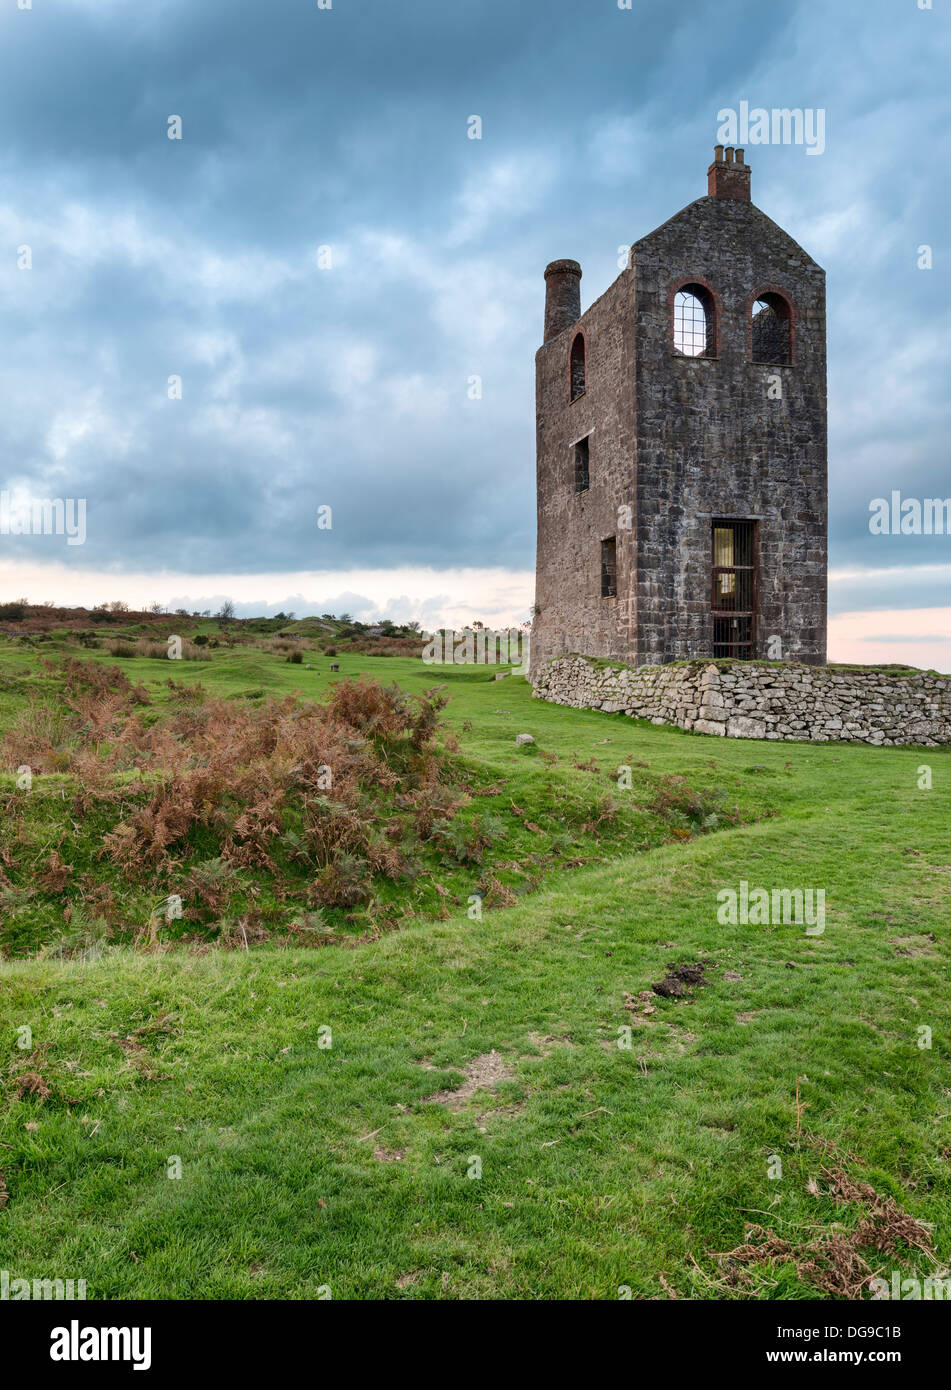 old cornish tin mine stockfotos old cornish tin mine bilder alamy. Black Bedroom Furniture Sets. Home Design Ideas